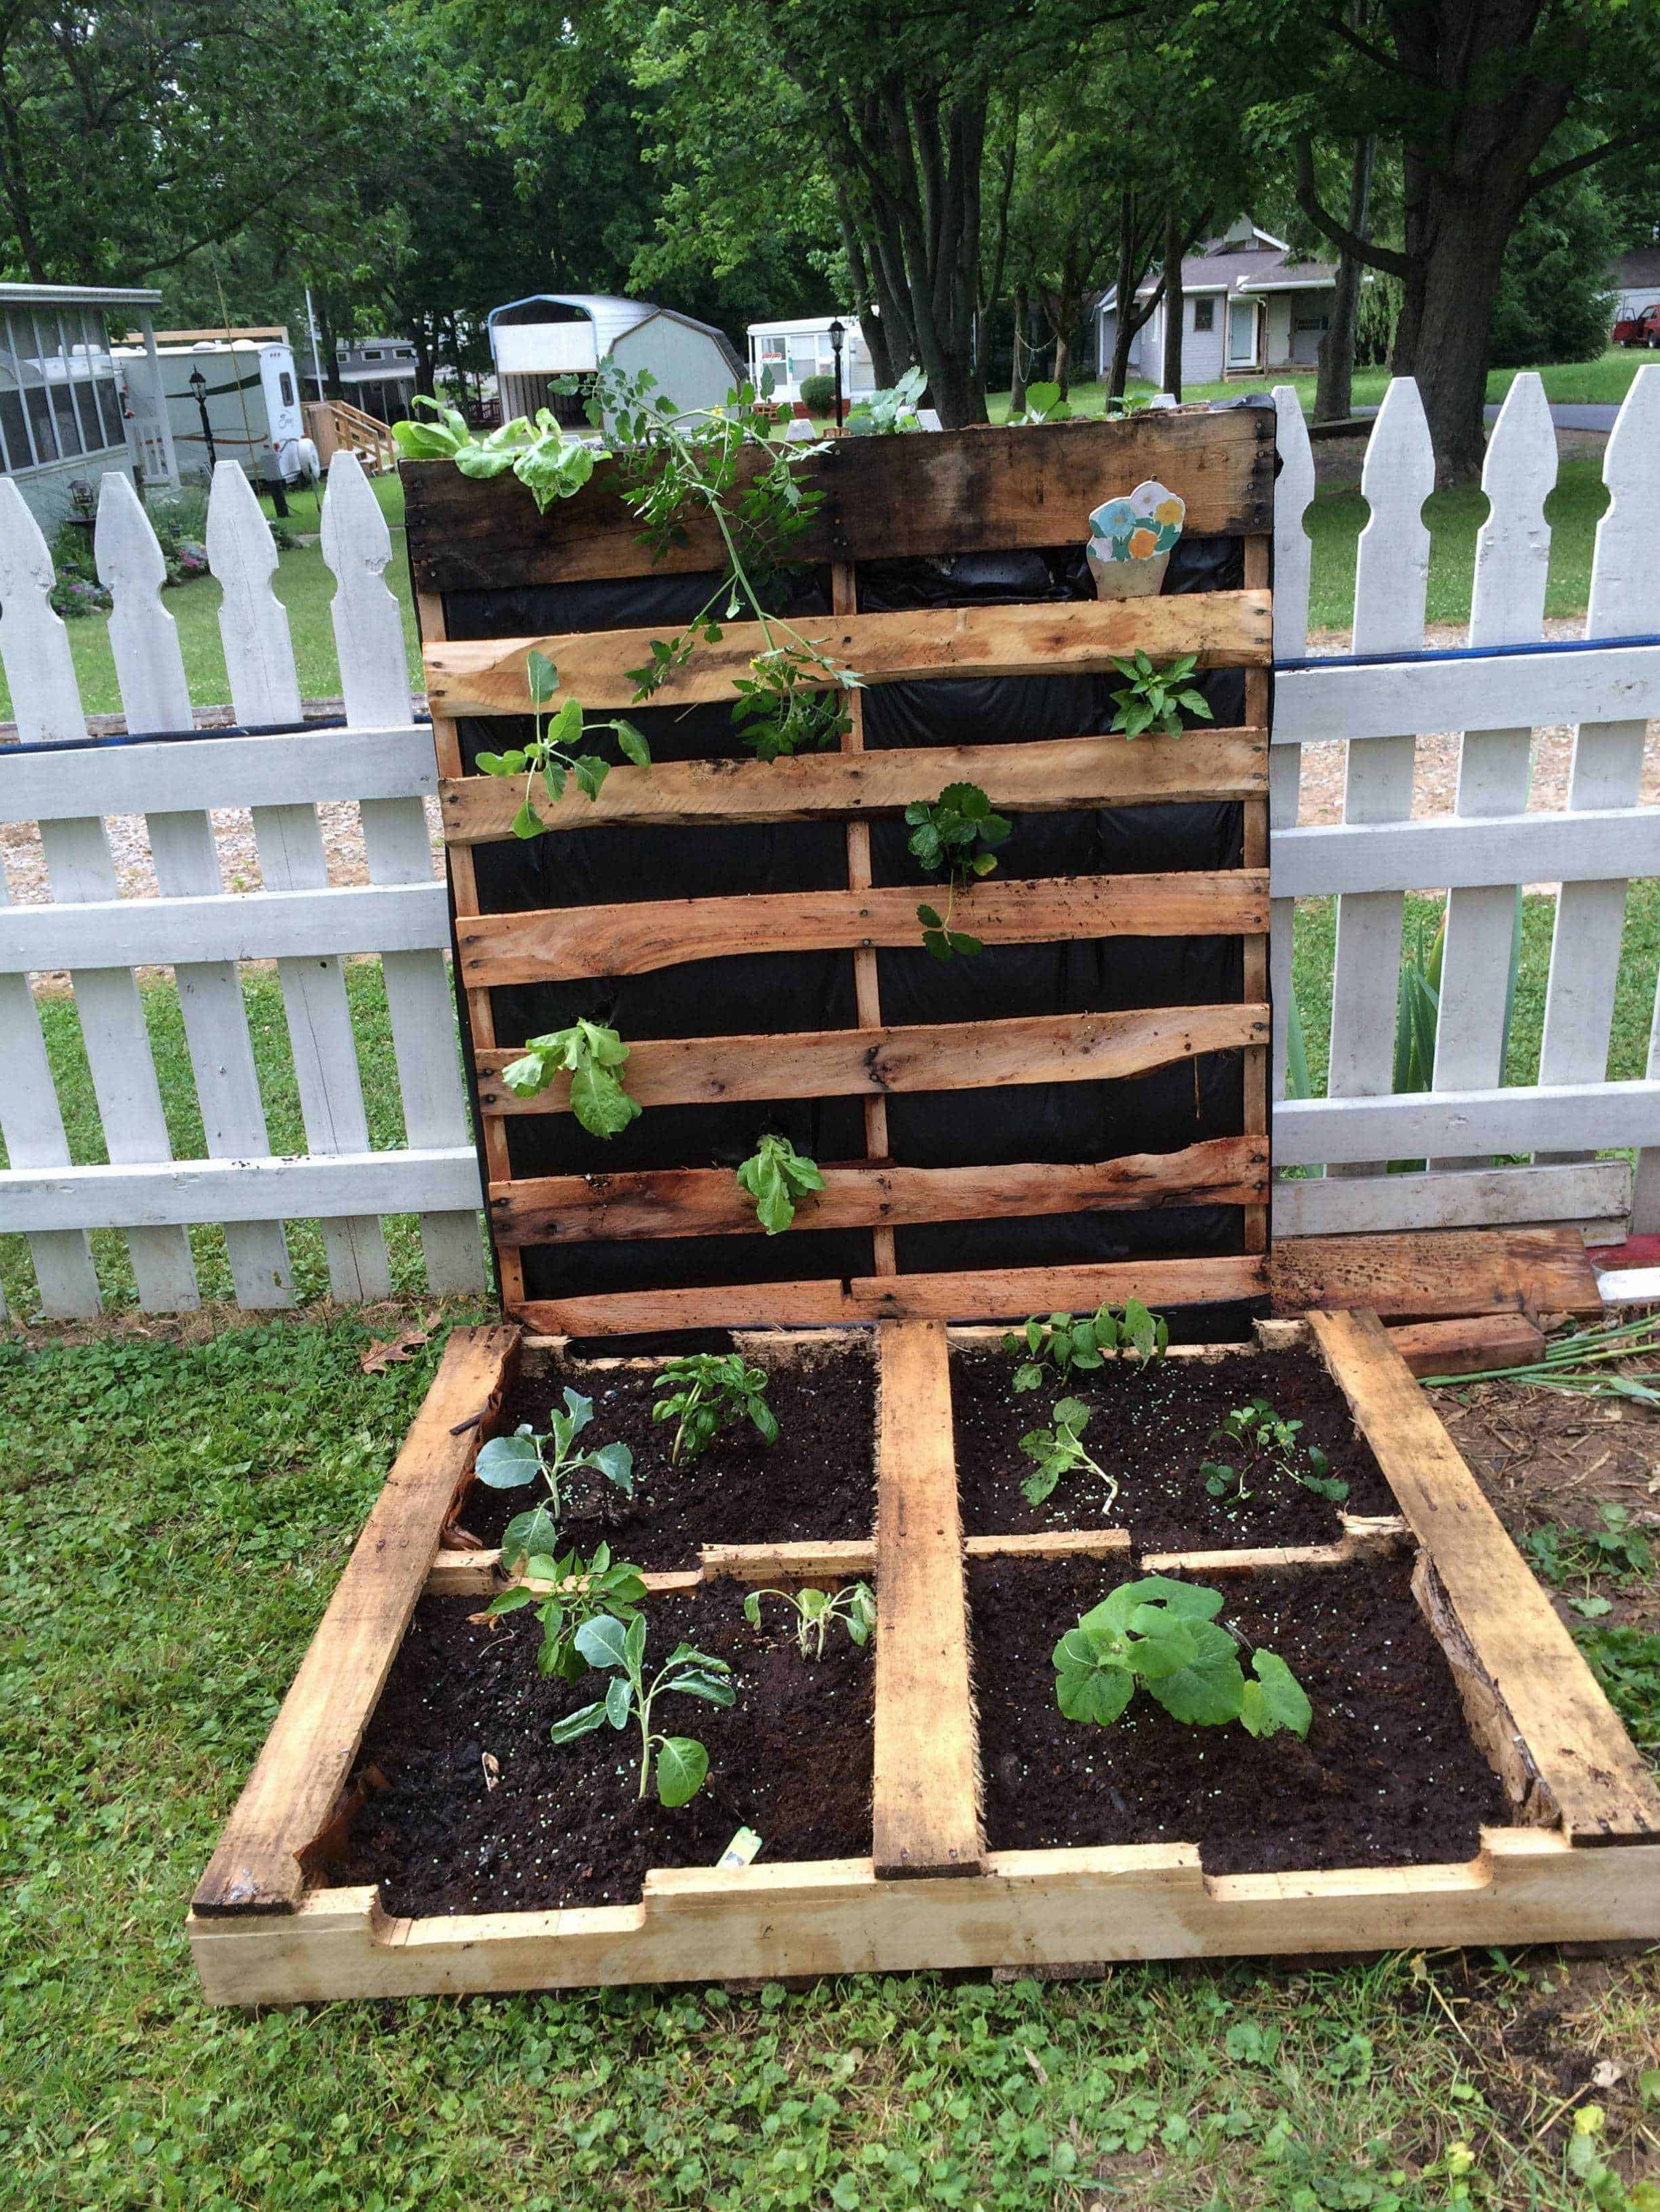 How to make your first pallet garden 1001 pallets for Pallet veggie garden